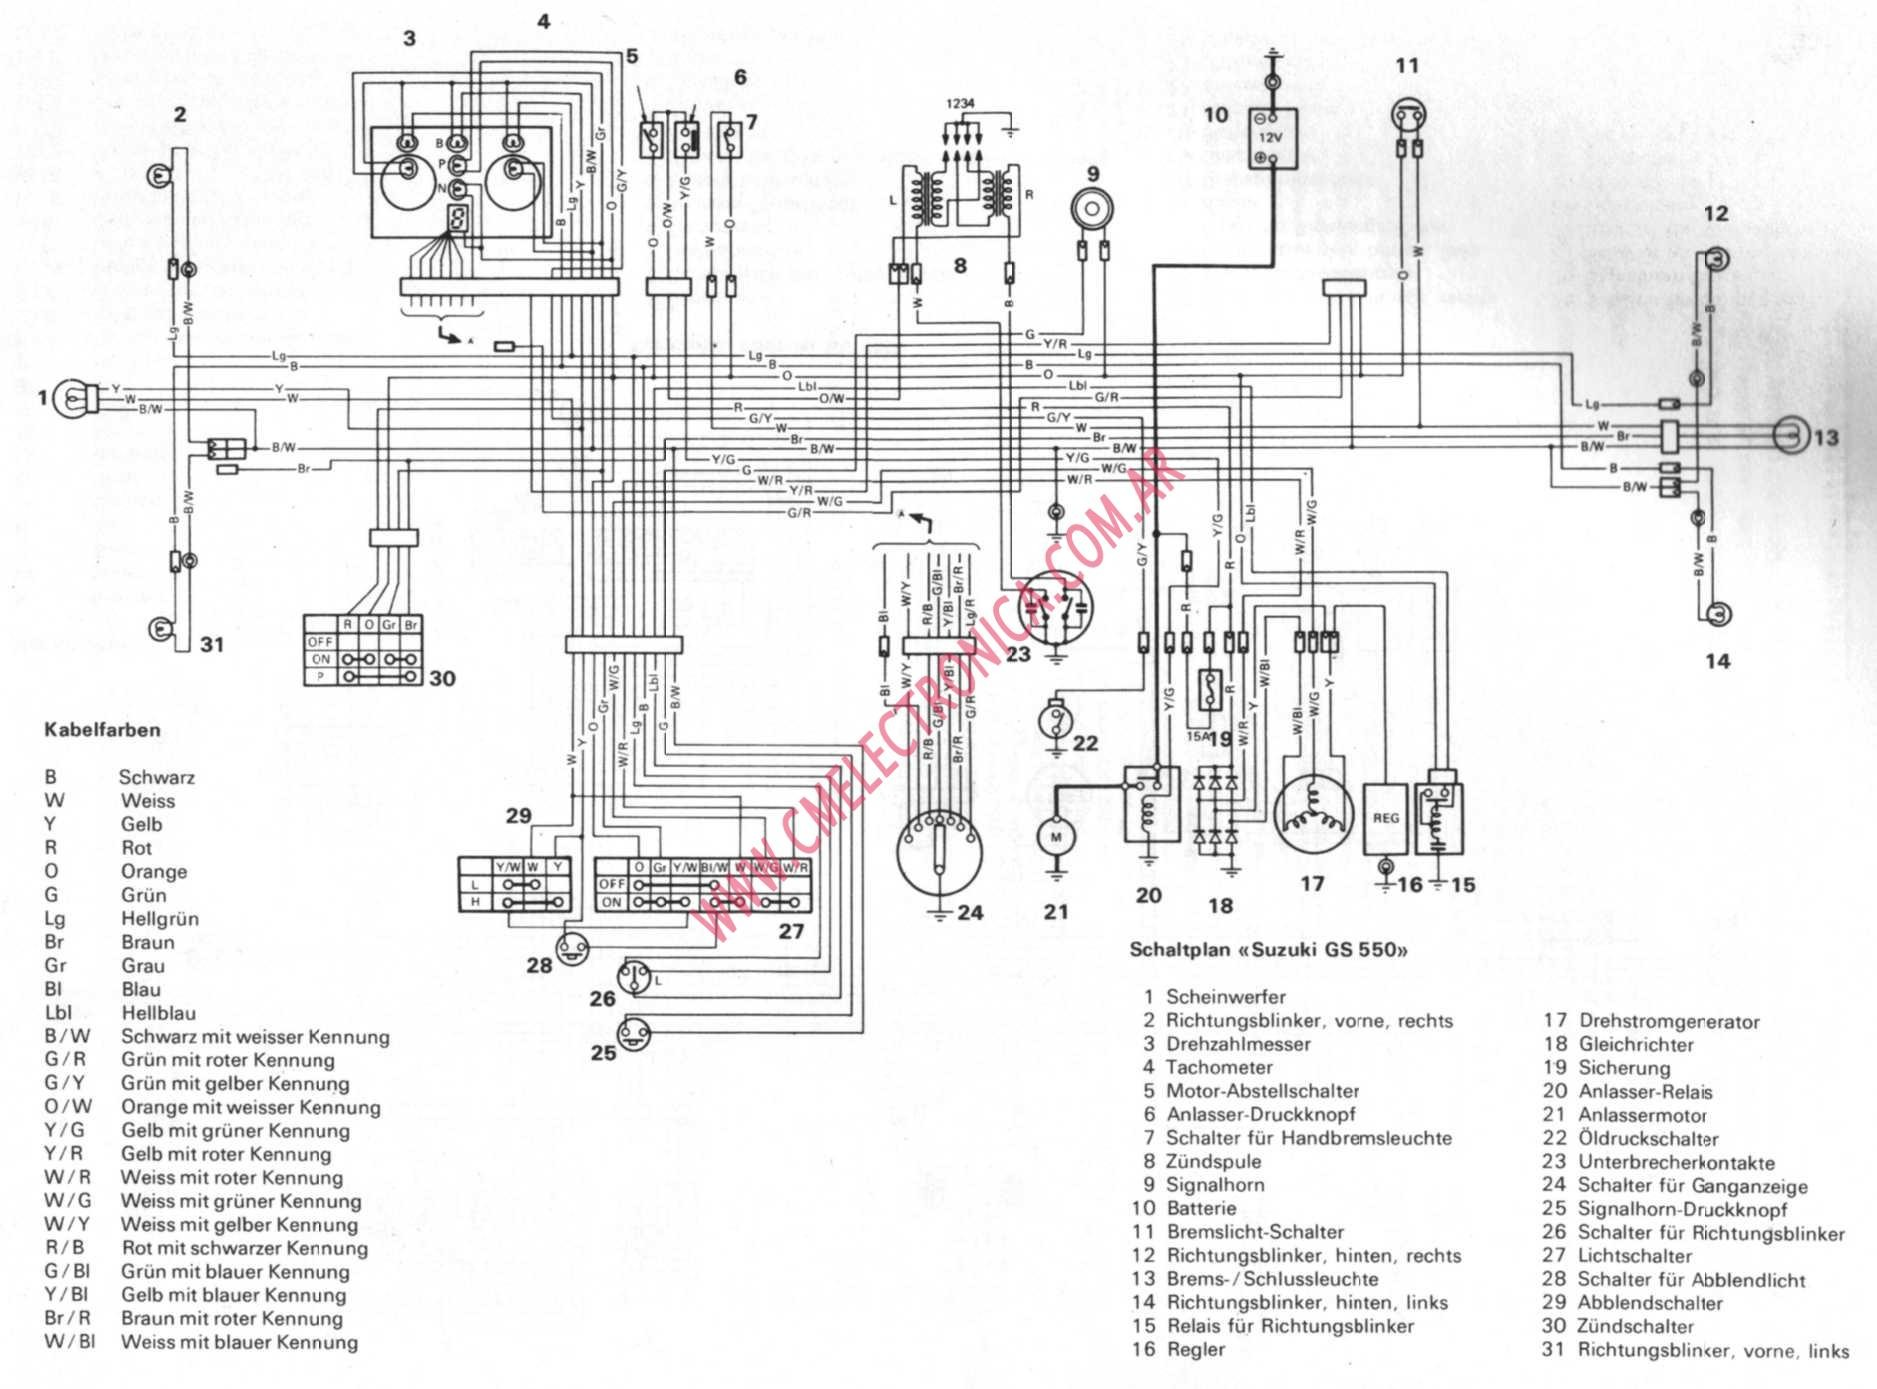 hight resolution of wiring diagram as well suzuki gs 550 suzuki gn 400 wiring 1979 gs850 wiring diagram 1979 gs850 wiring diagram